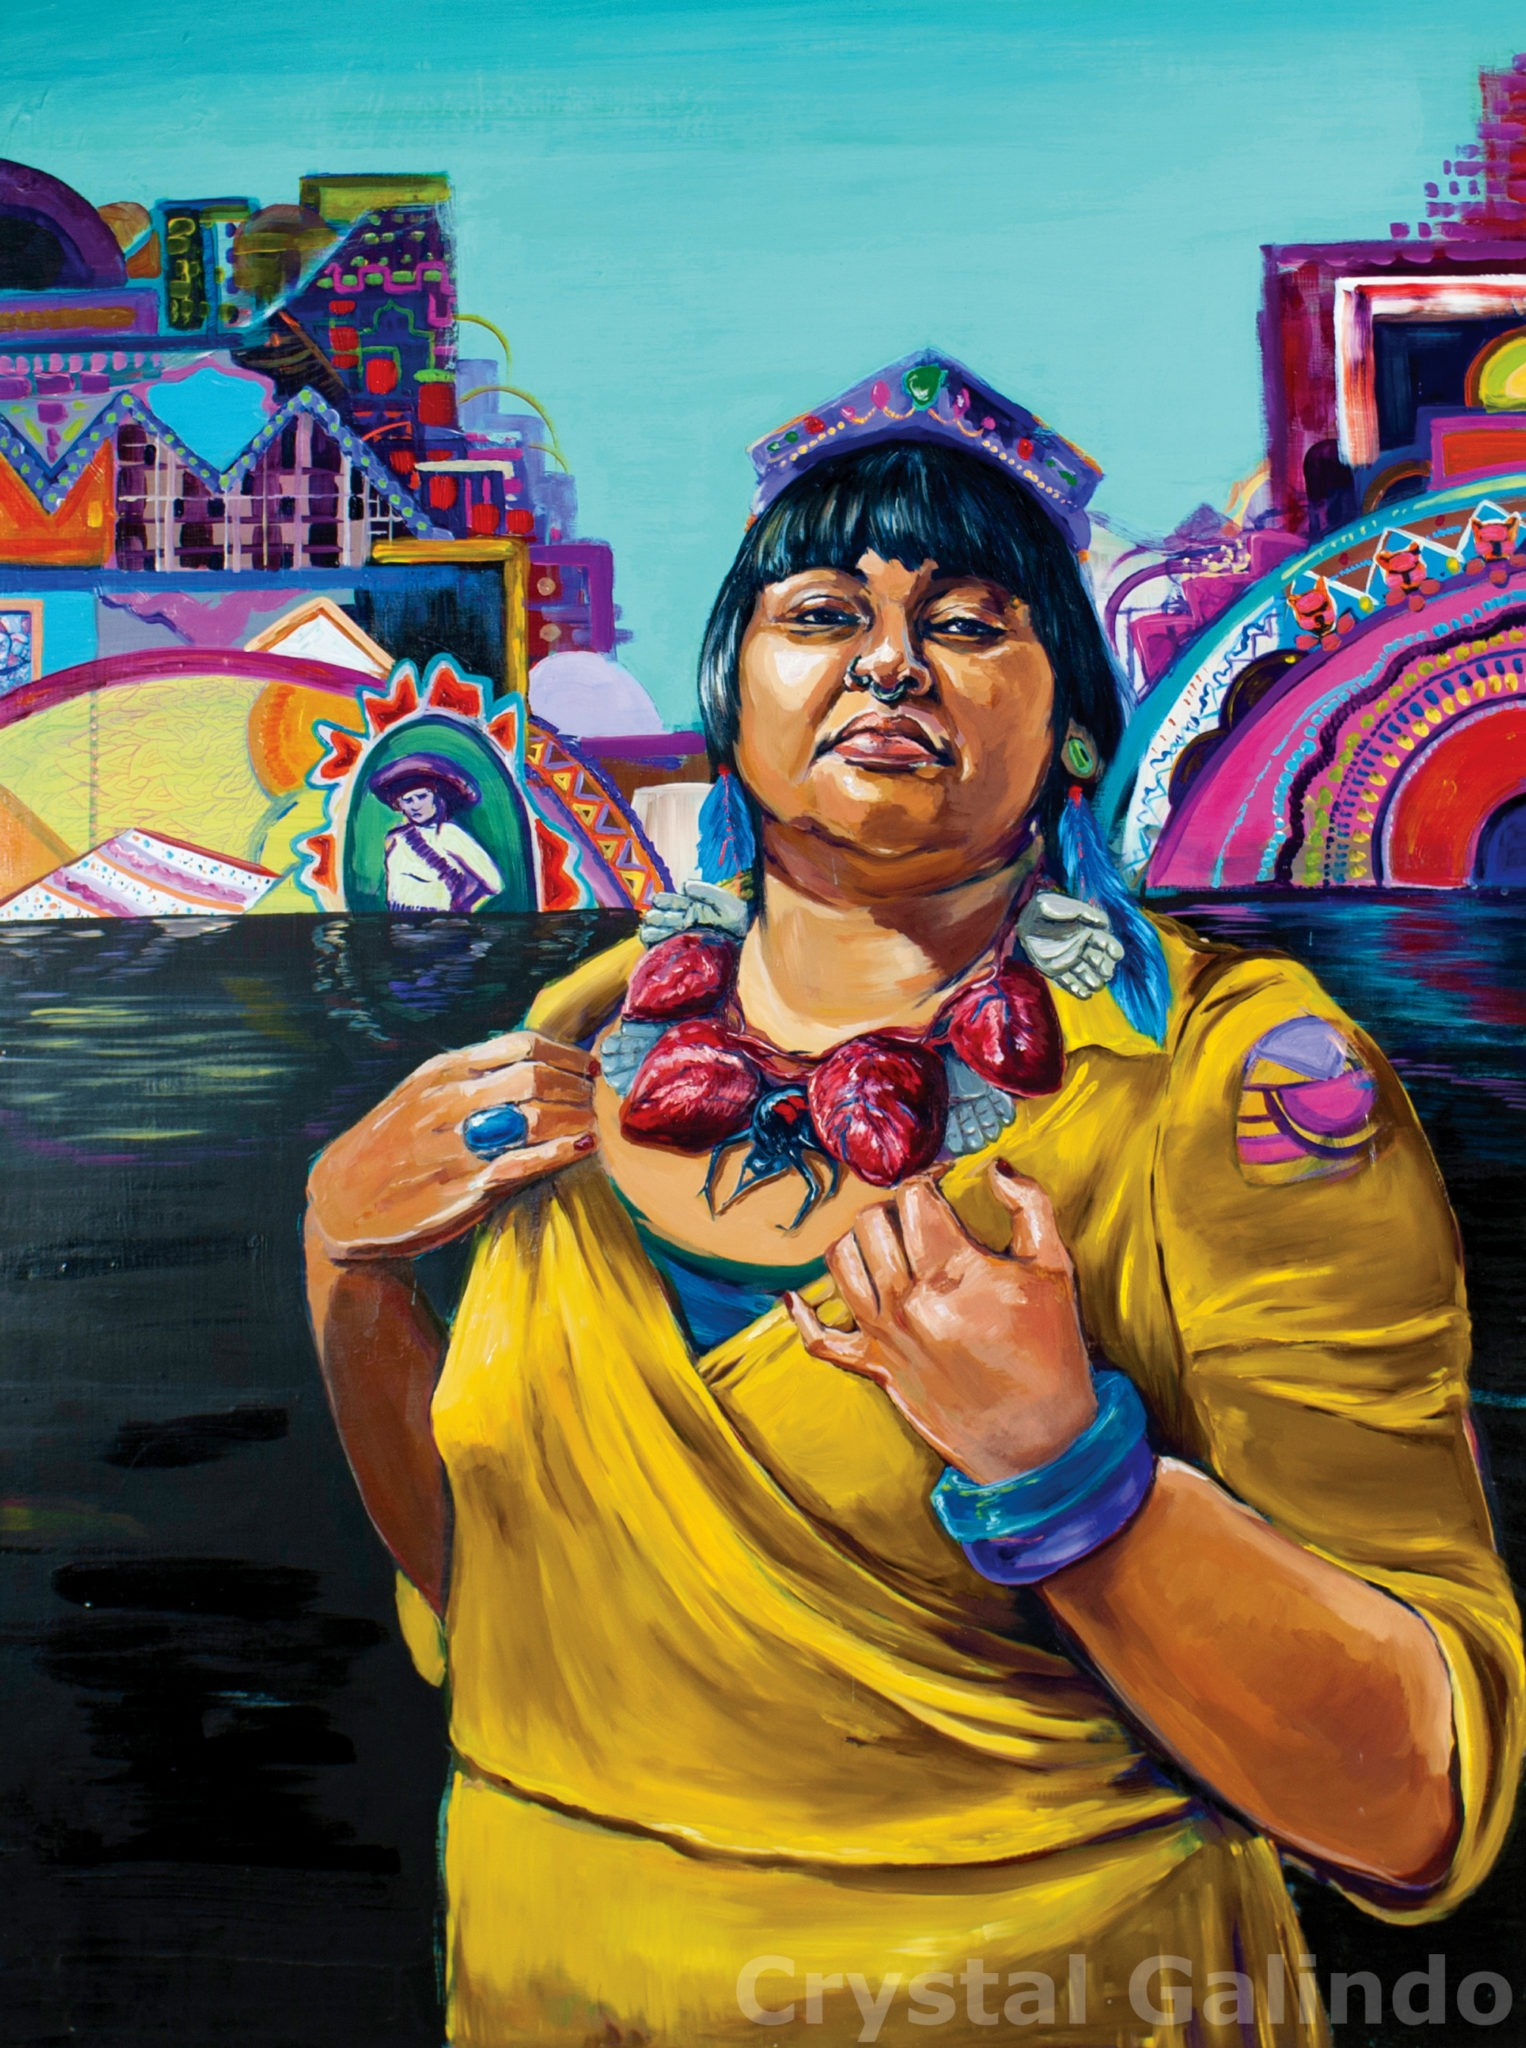 Interview with Yaqui-Xicana artist Crystal Galindo